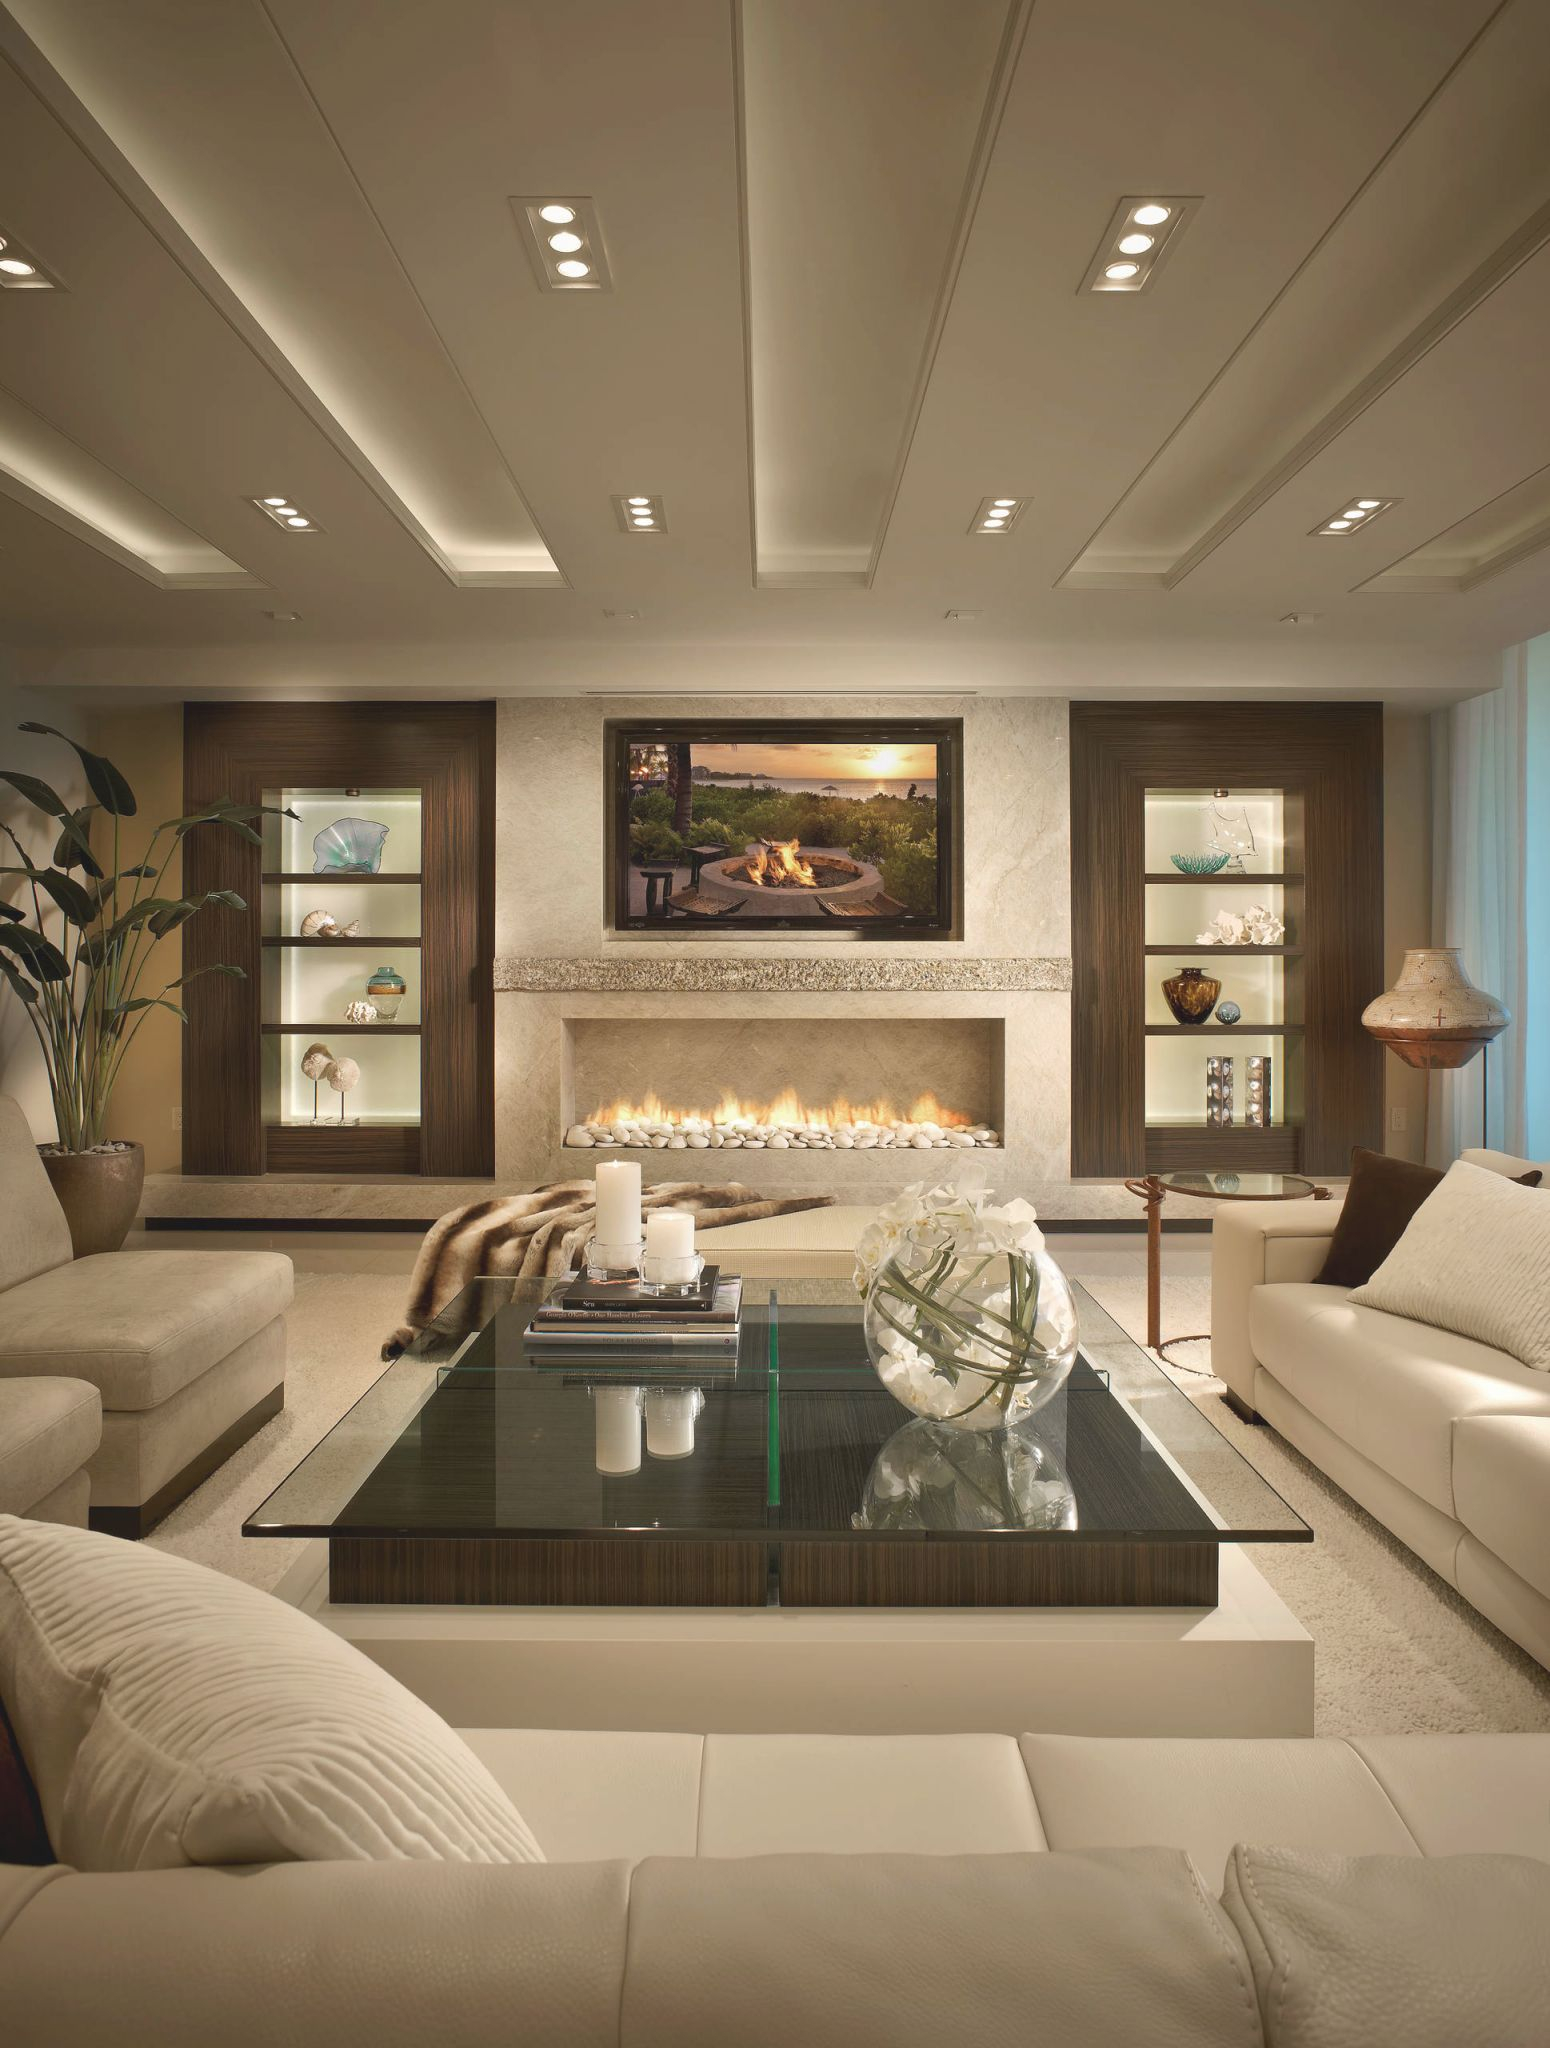 75 Beautiful Contemporary Living Room Pictures & Ideas | Houzz throughout 8+ Amazing Ideas For Ideas For Living Room Decoration Modern